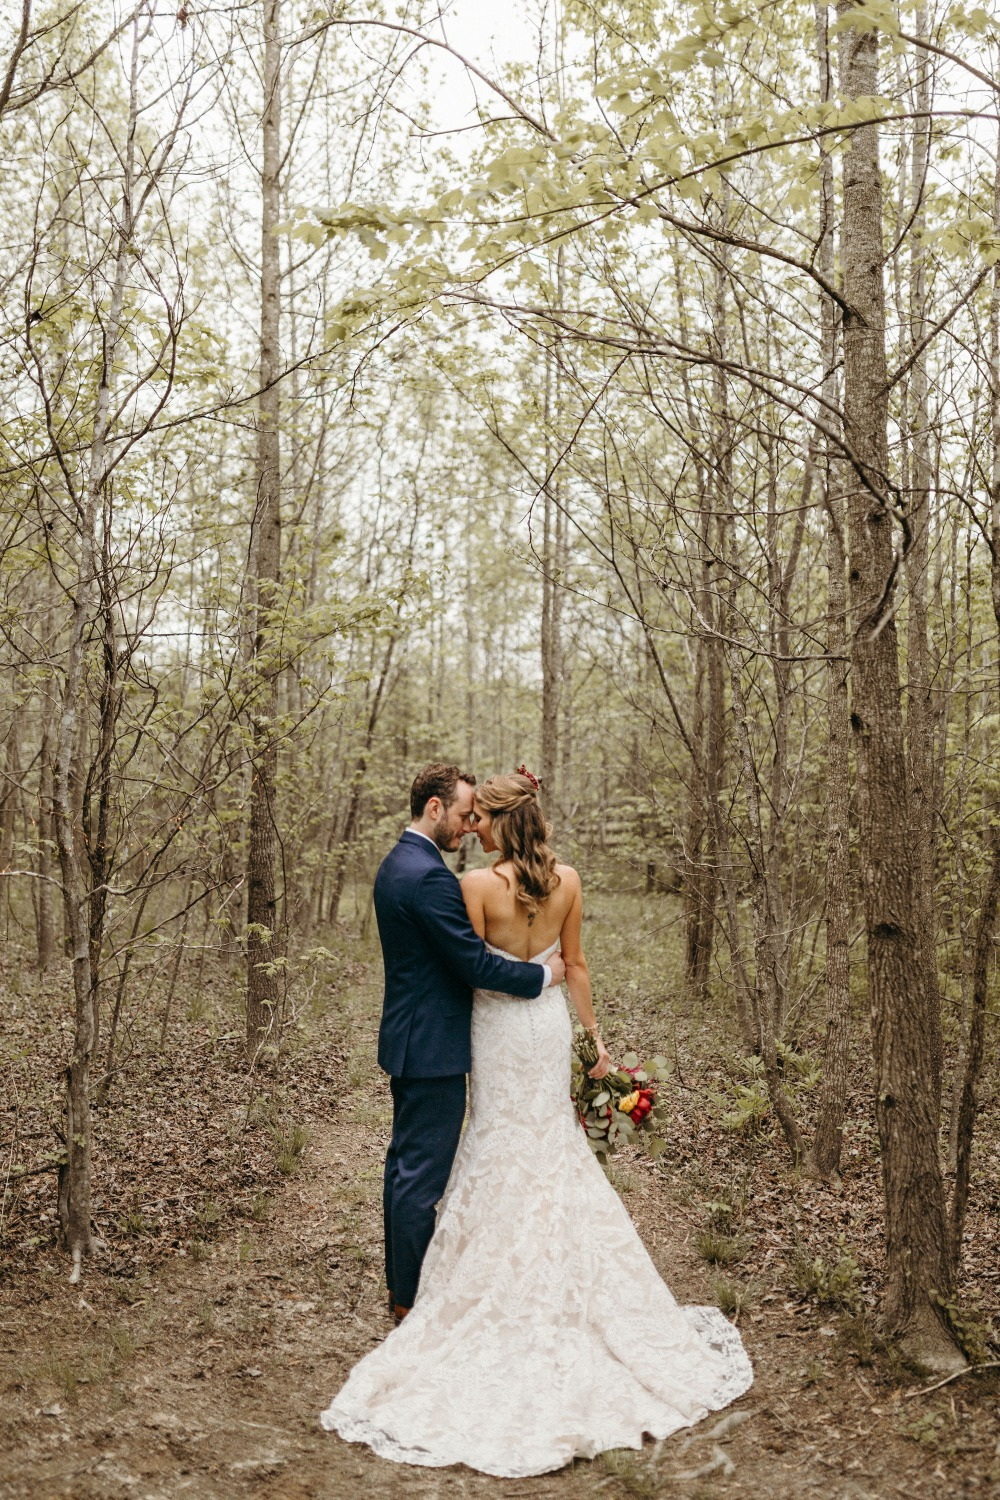 Wedding photo in the woods